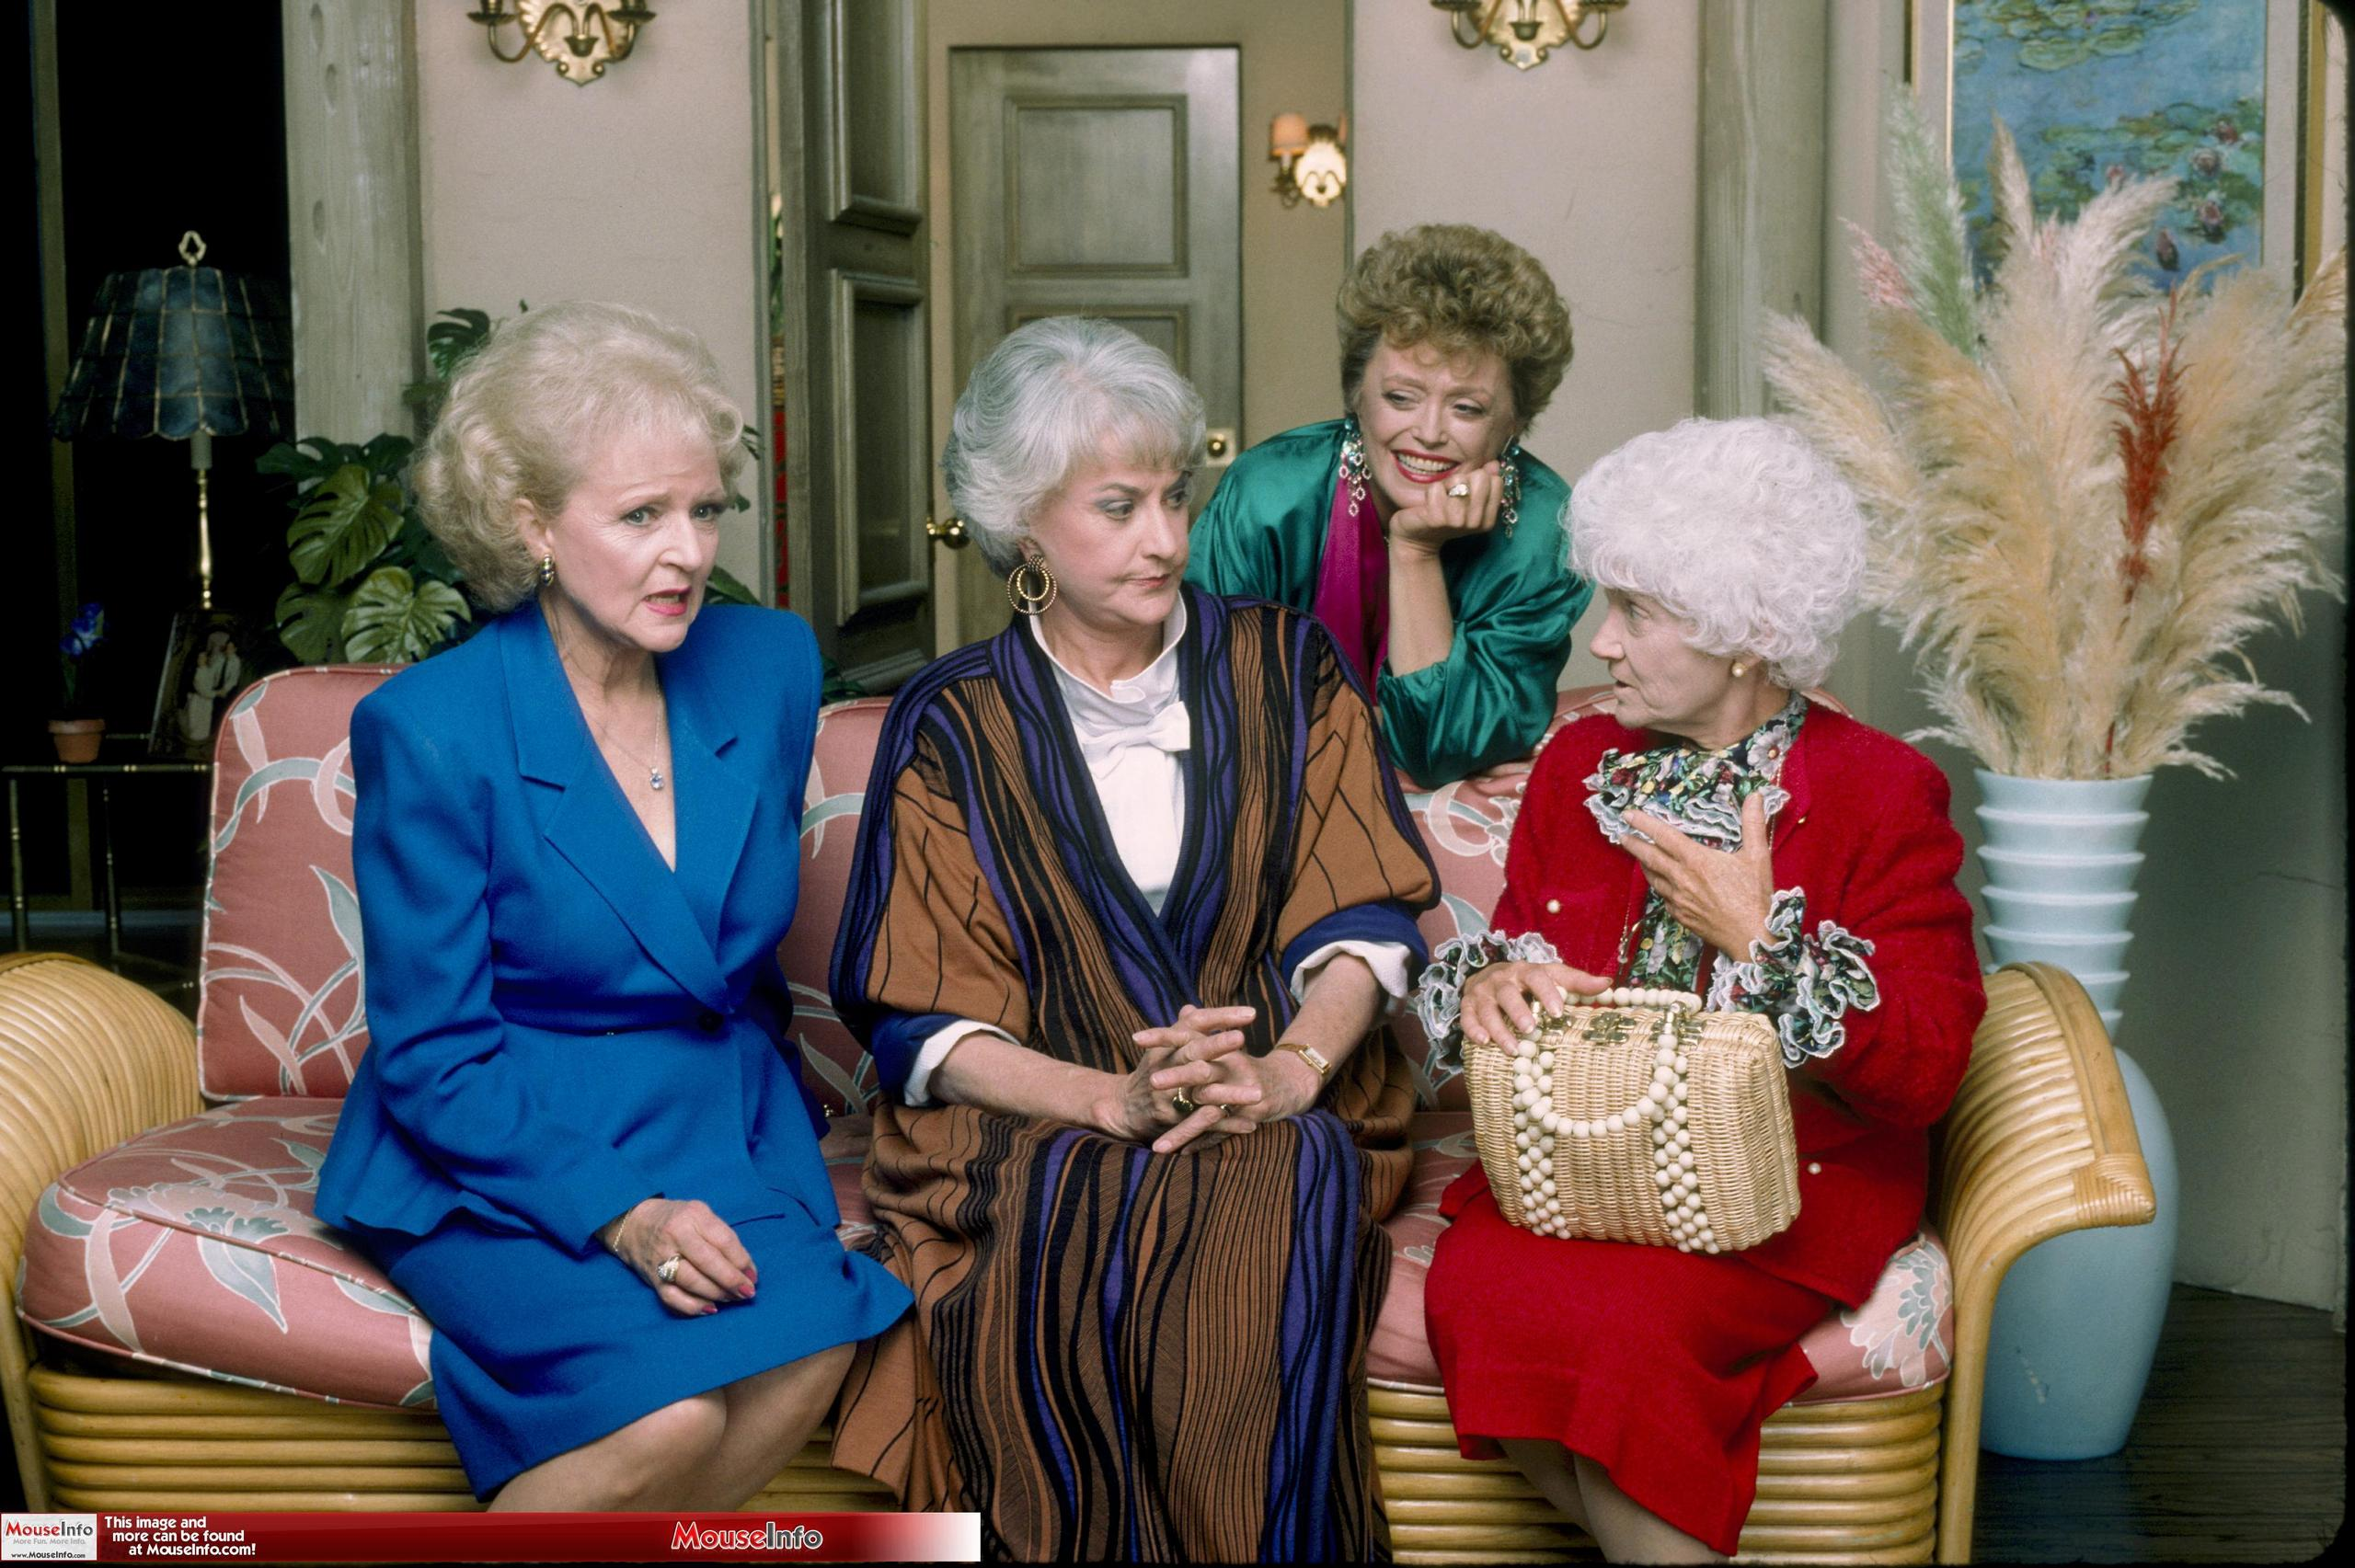 golden girls New york (cbs/ap) updated 1:07 pm est rue mcclanahan, the emmy-winning actress who brought the sexually liberated southern belle blanche devereaux to life on the hit tv series the golden.